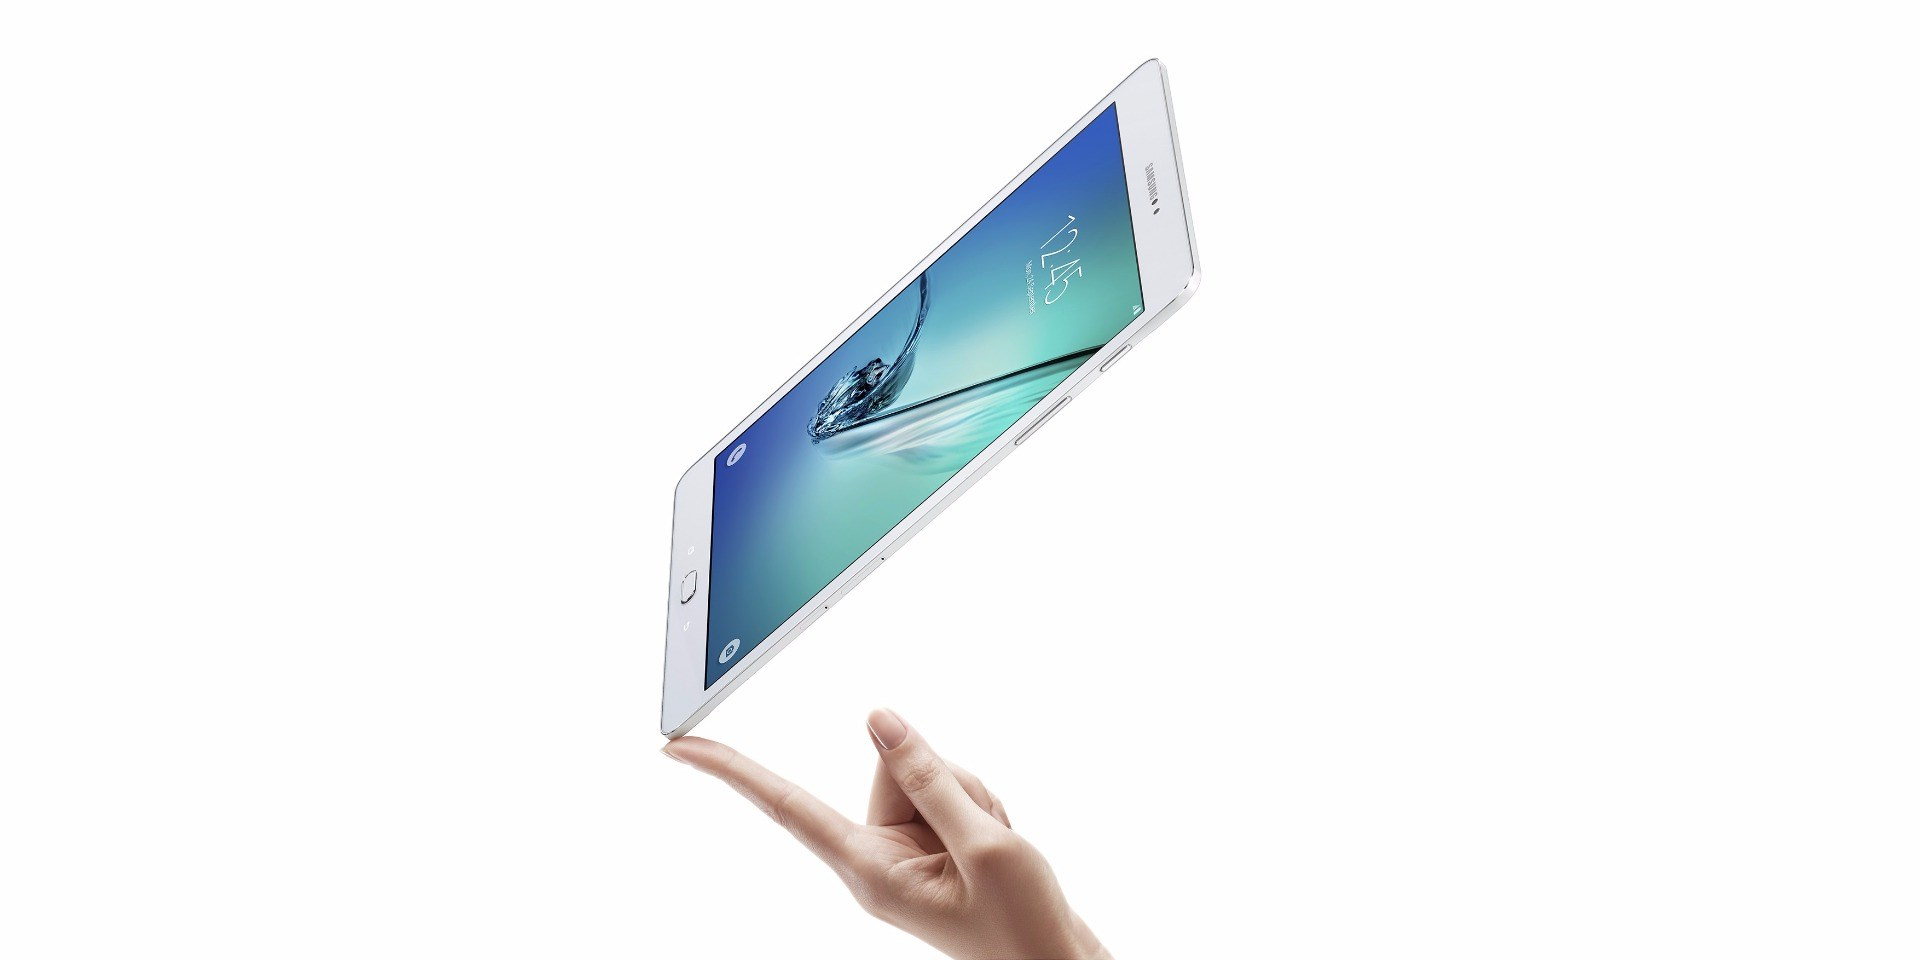 Samsung's new tablets are thinner than the iPad Air 2